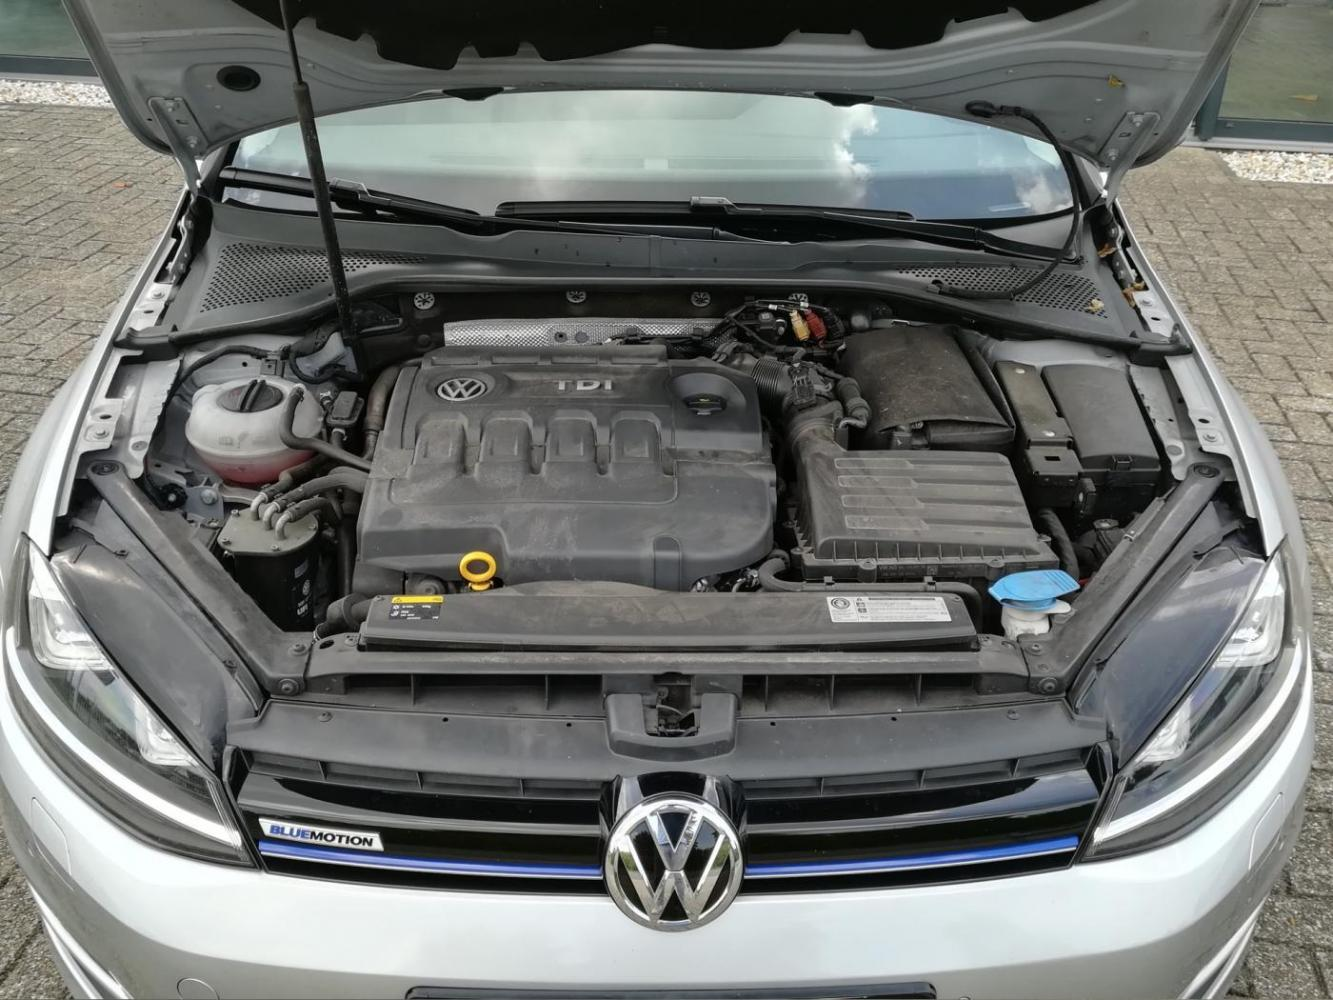 Volkswagen Golf 1.6 TDI Highline Bluemotion